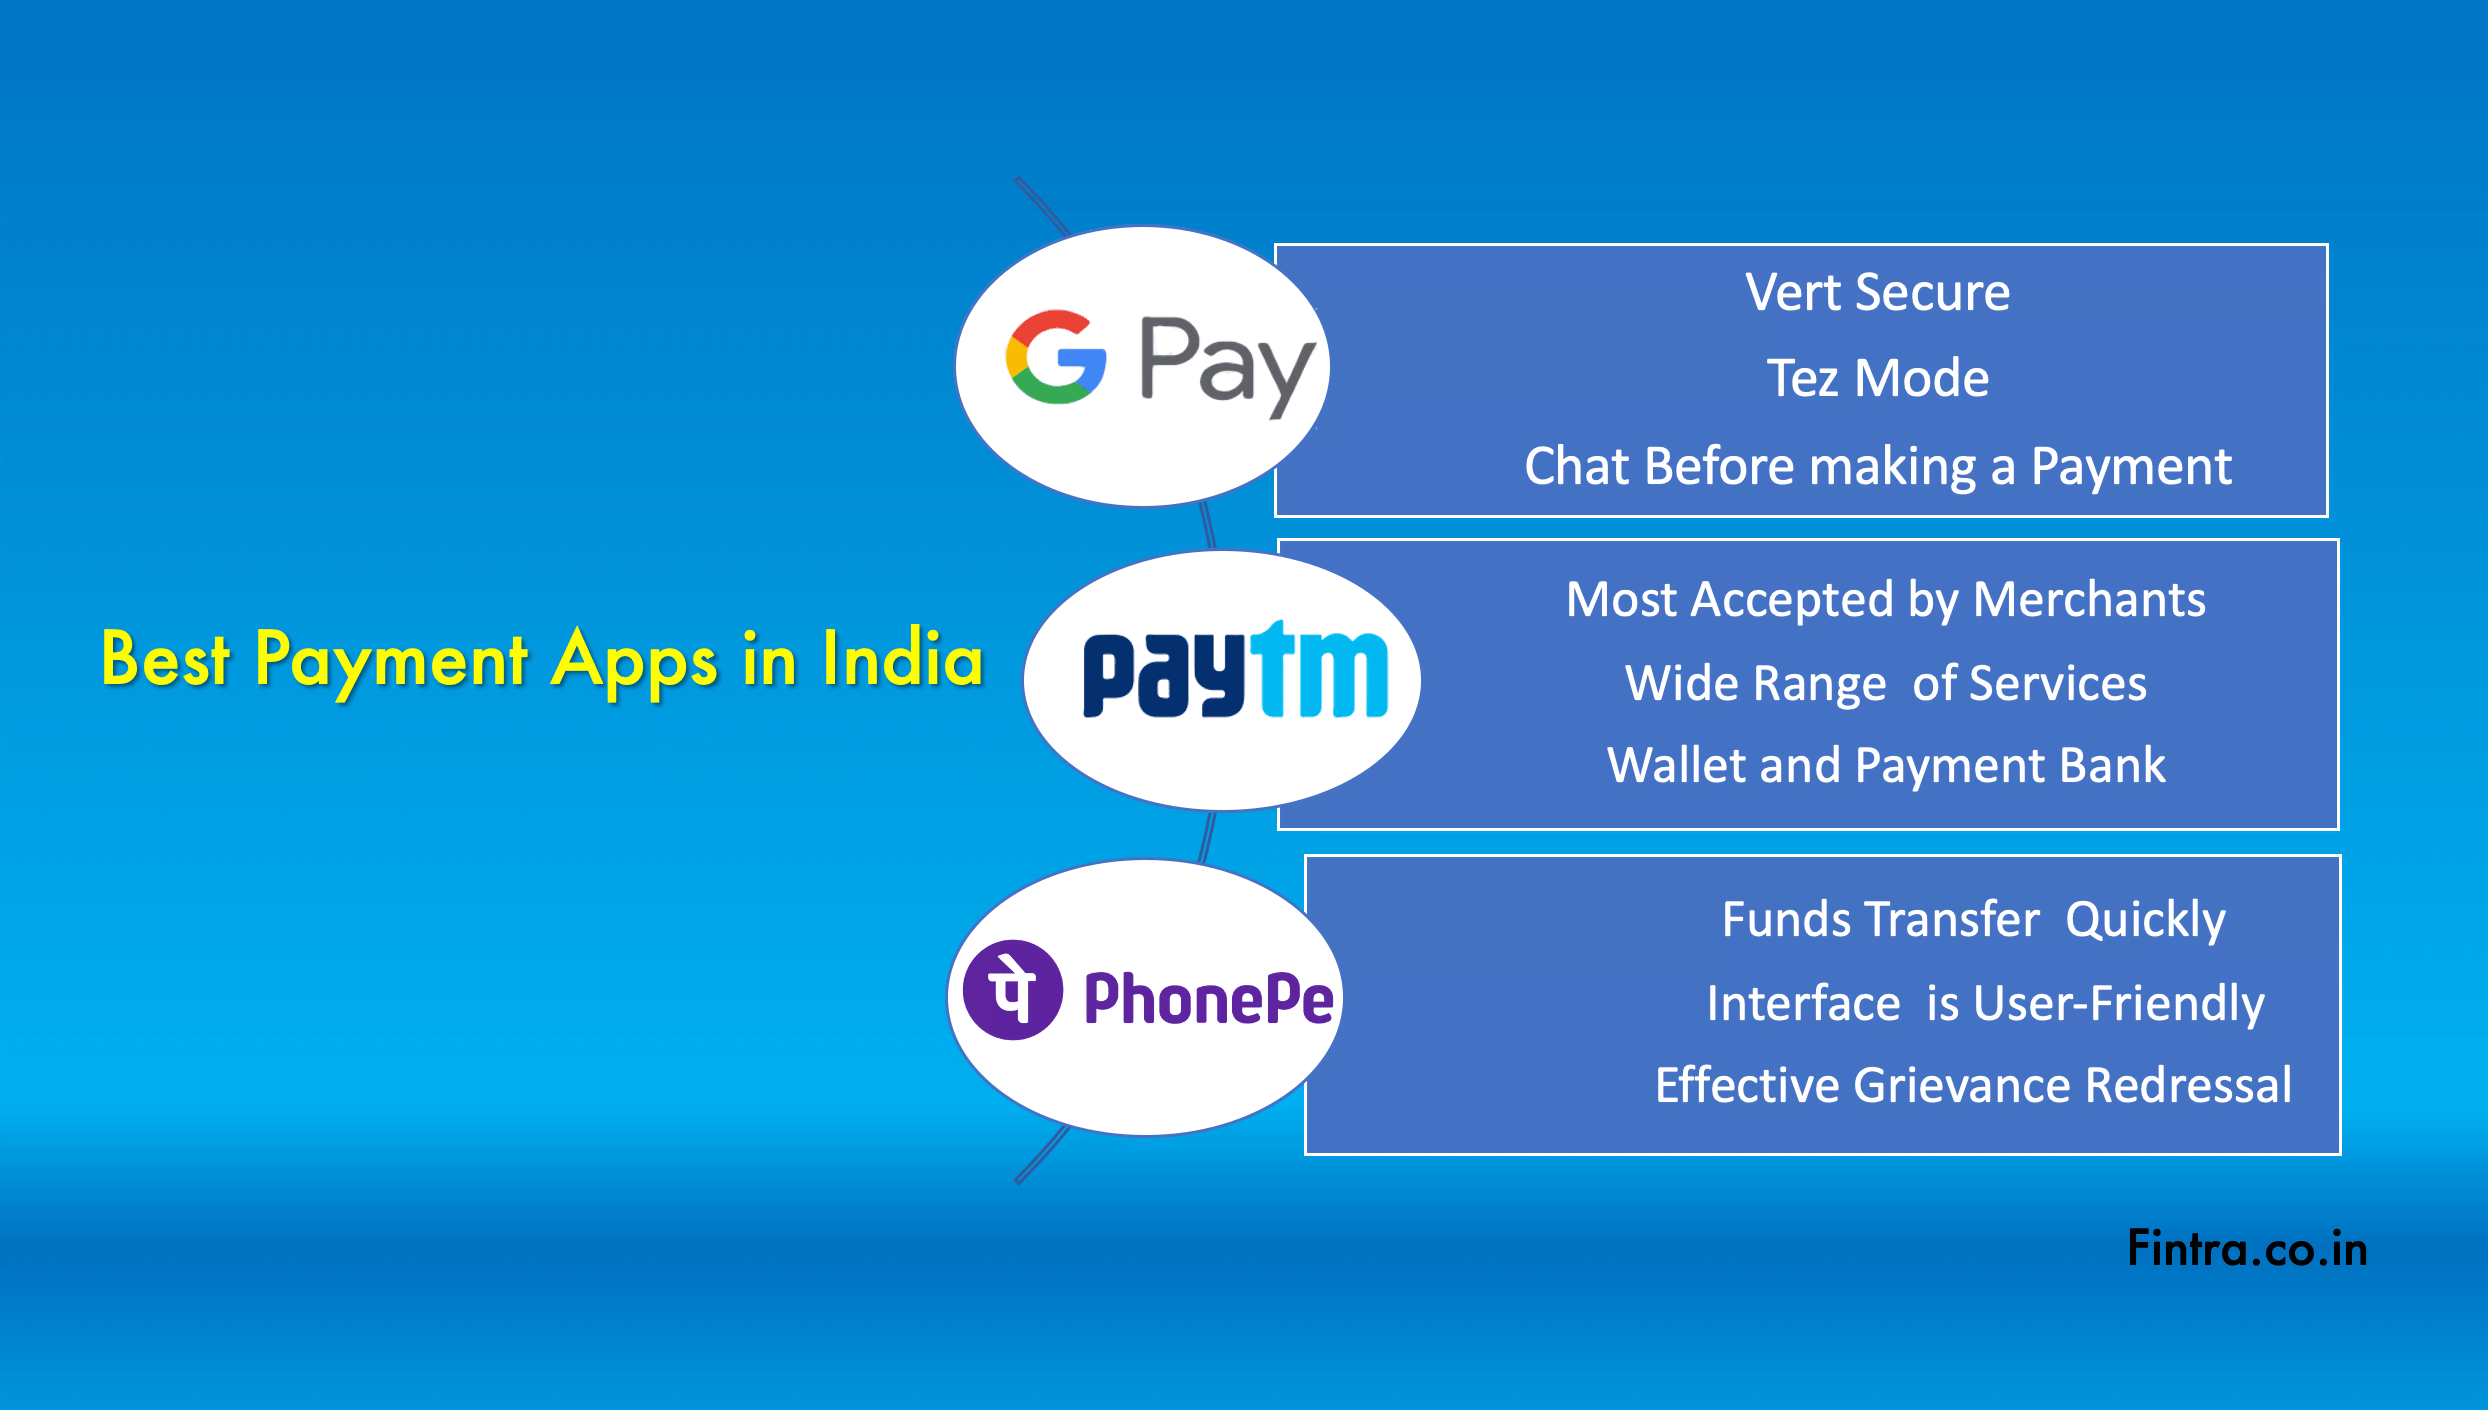 Google Pay, Paytm & PhonePe, Pay Bills Online Conveniently in 2021